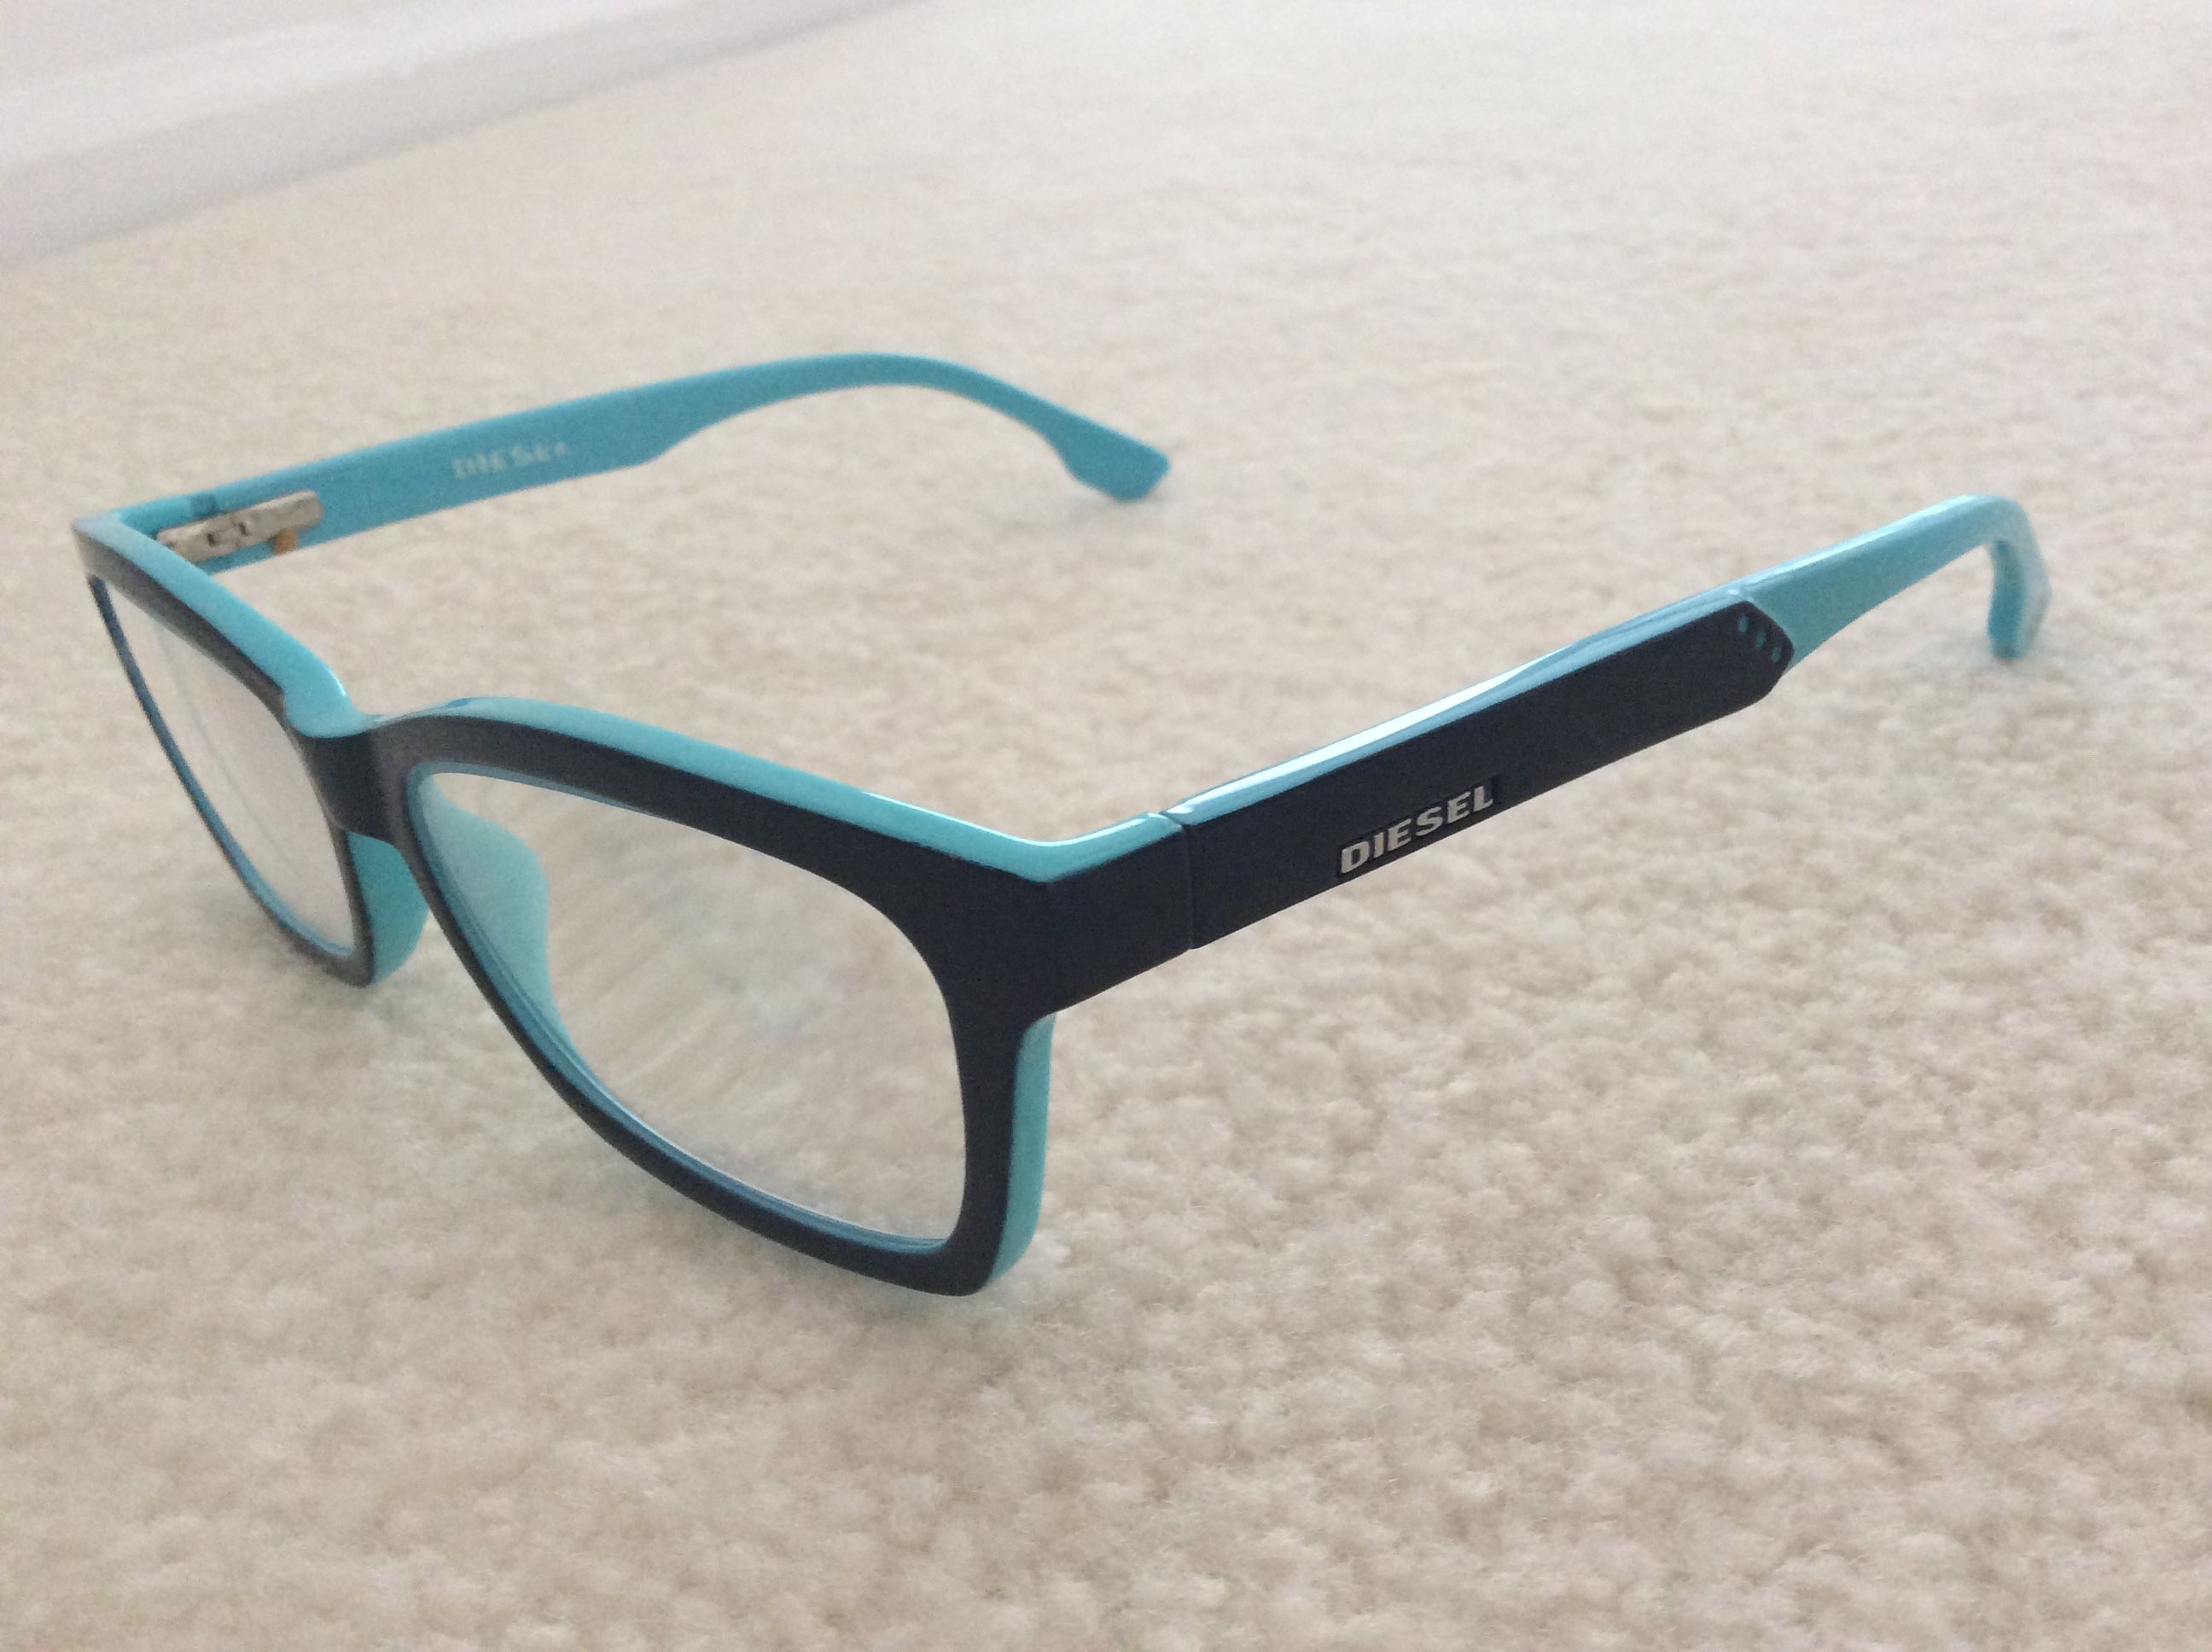 Eye glasses from Costco - Blogs & Forums